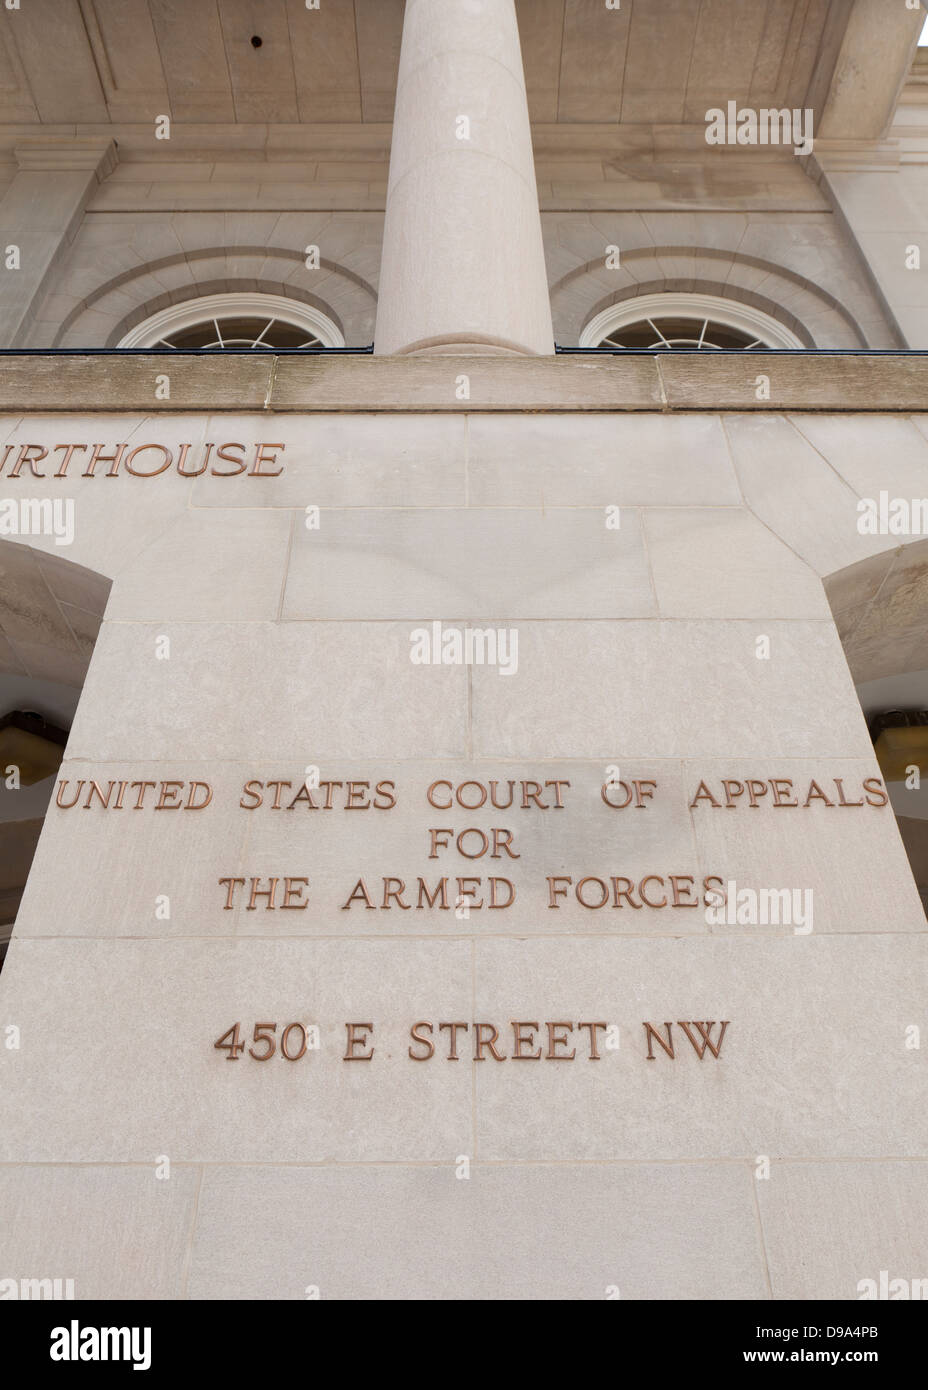 US Court of Appeals for The Armed Forces building - Washington, DC USA - Stock Image